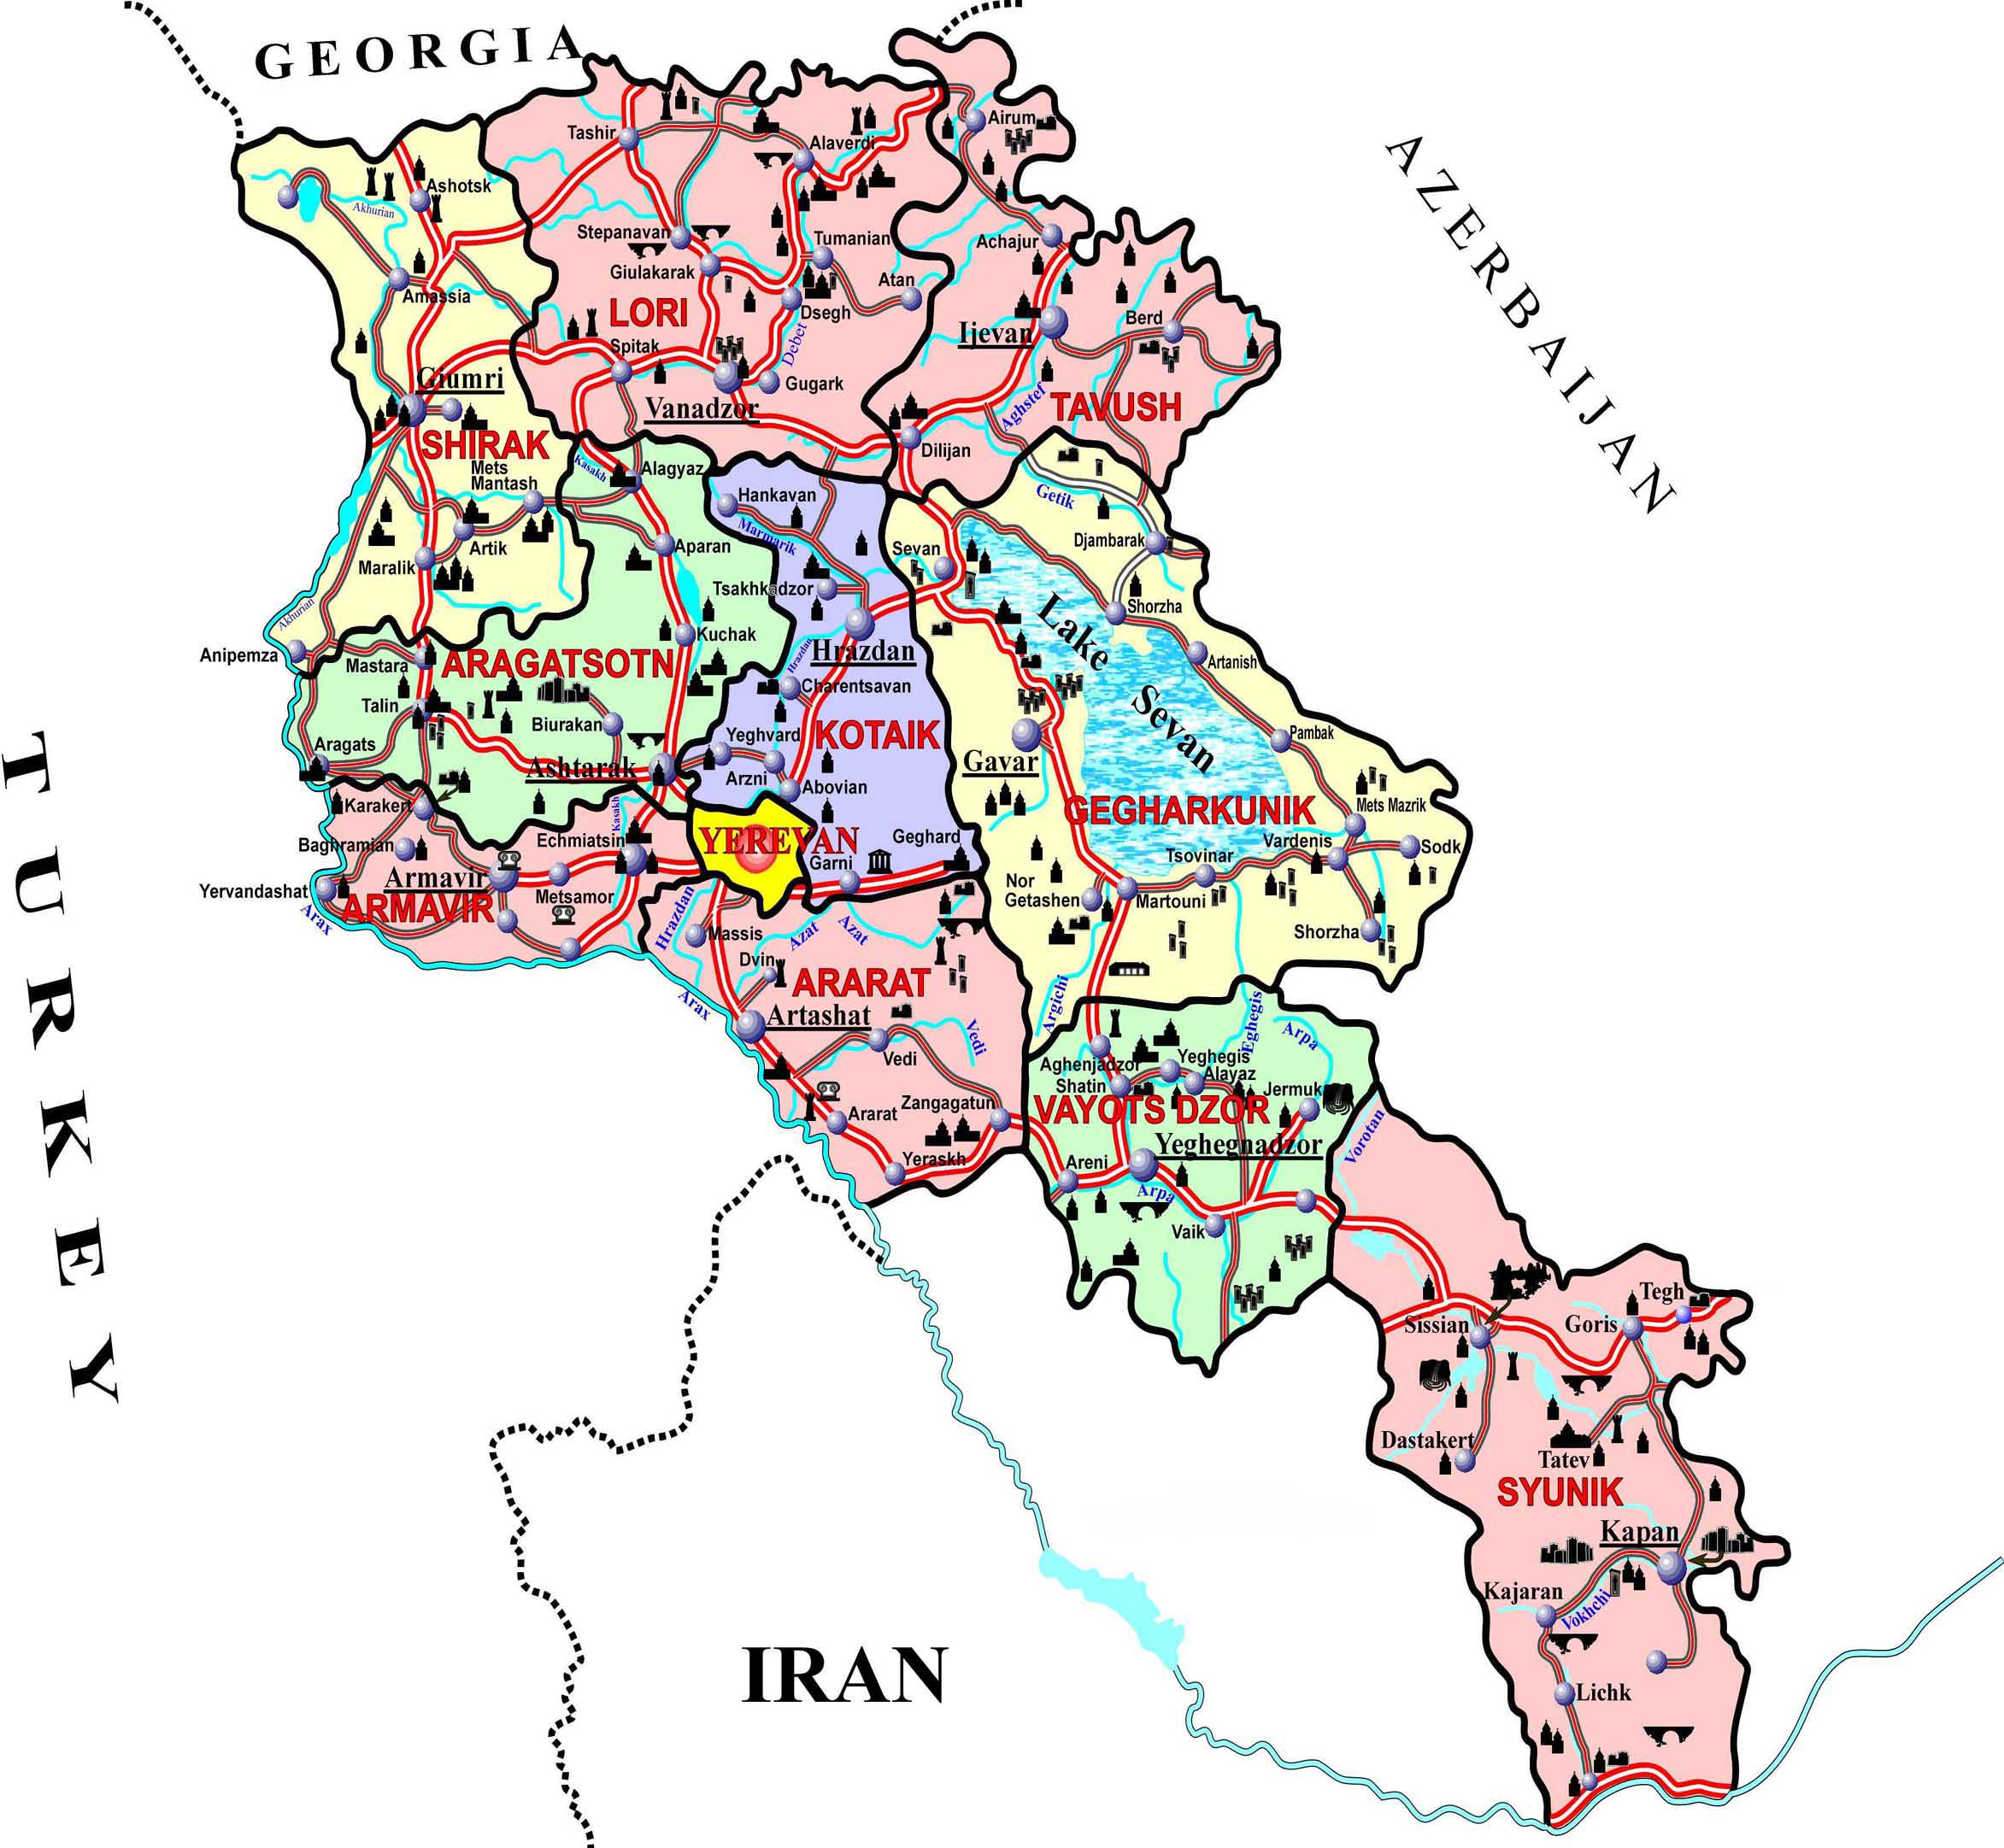 ARMENIA MAP TourArmenia - Armenia map